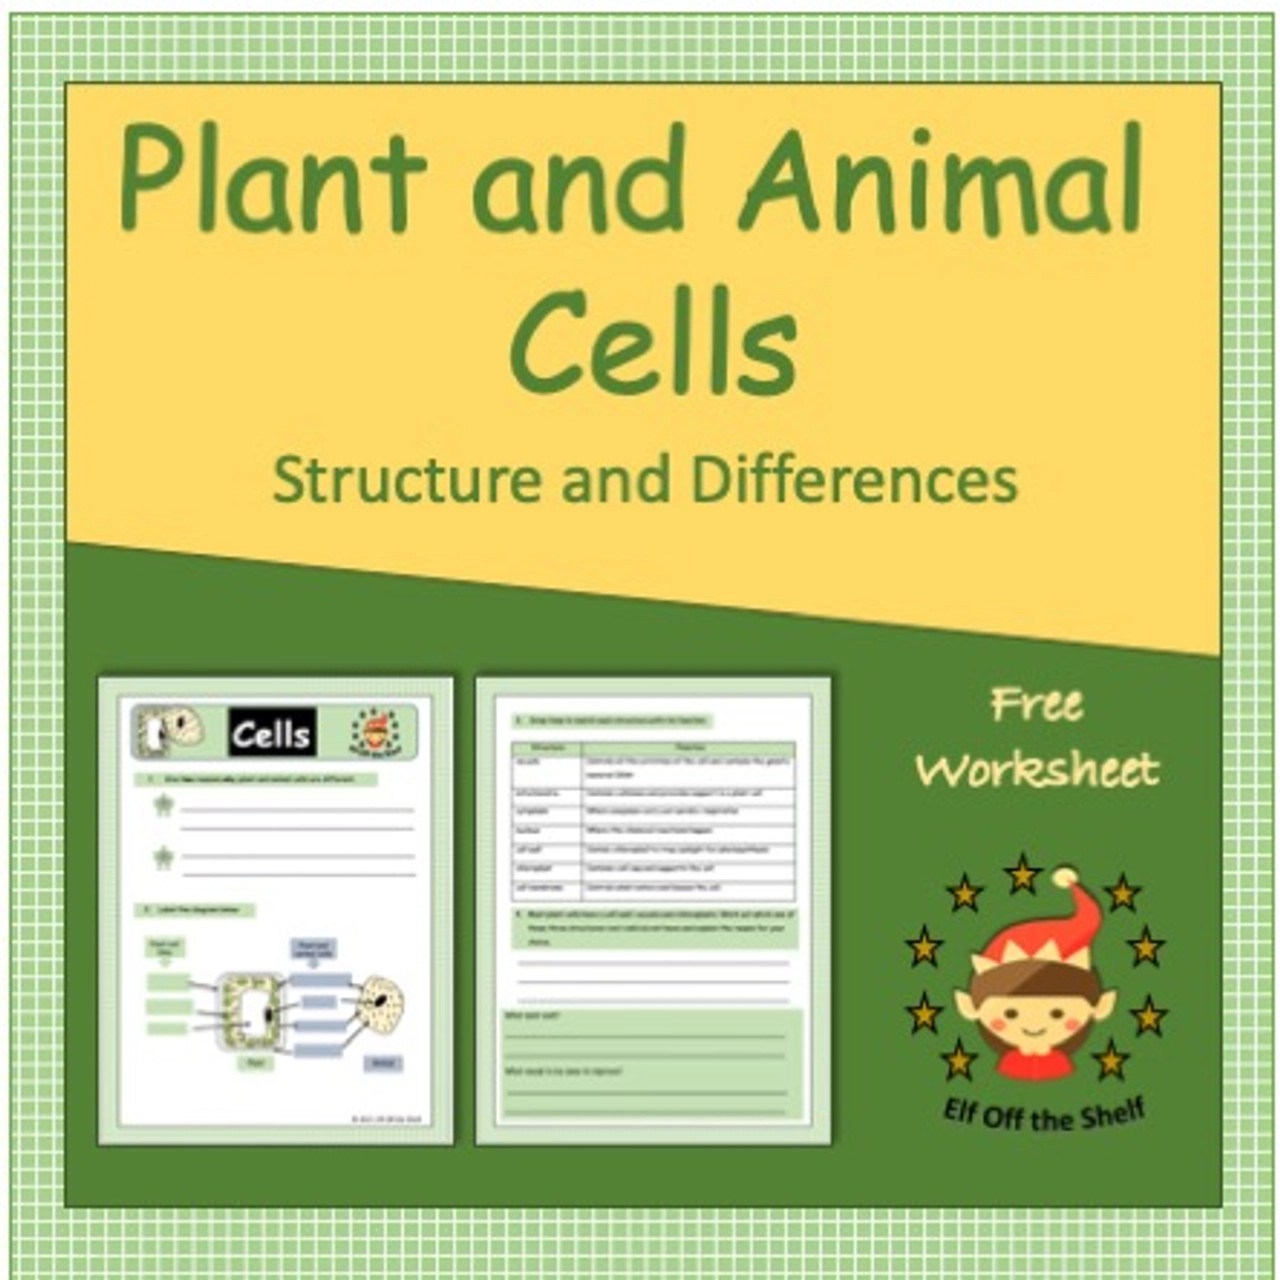 hight resolution of Plant and Animal Cells - Structure and Differences - Free Worksheet - Amped  Up Learning